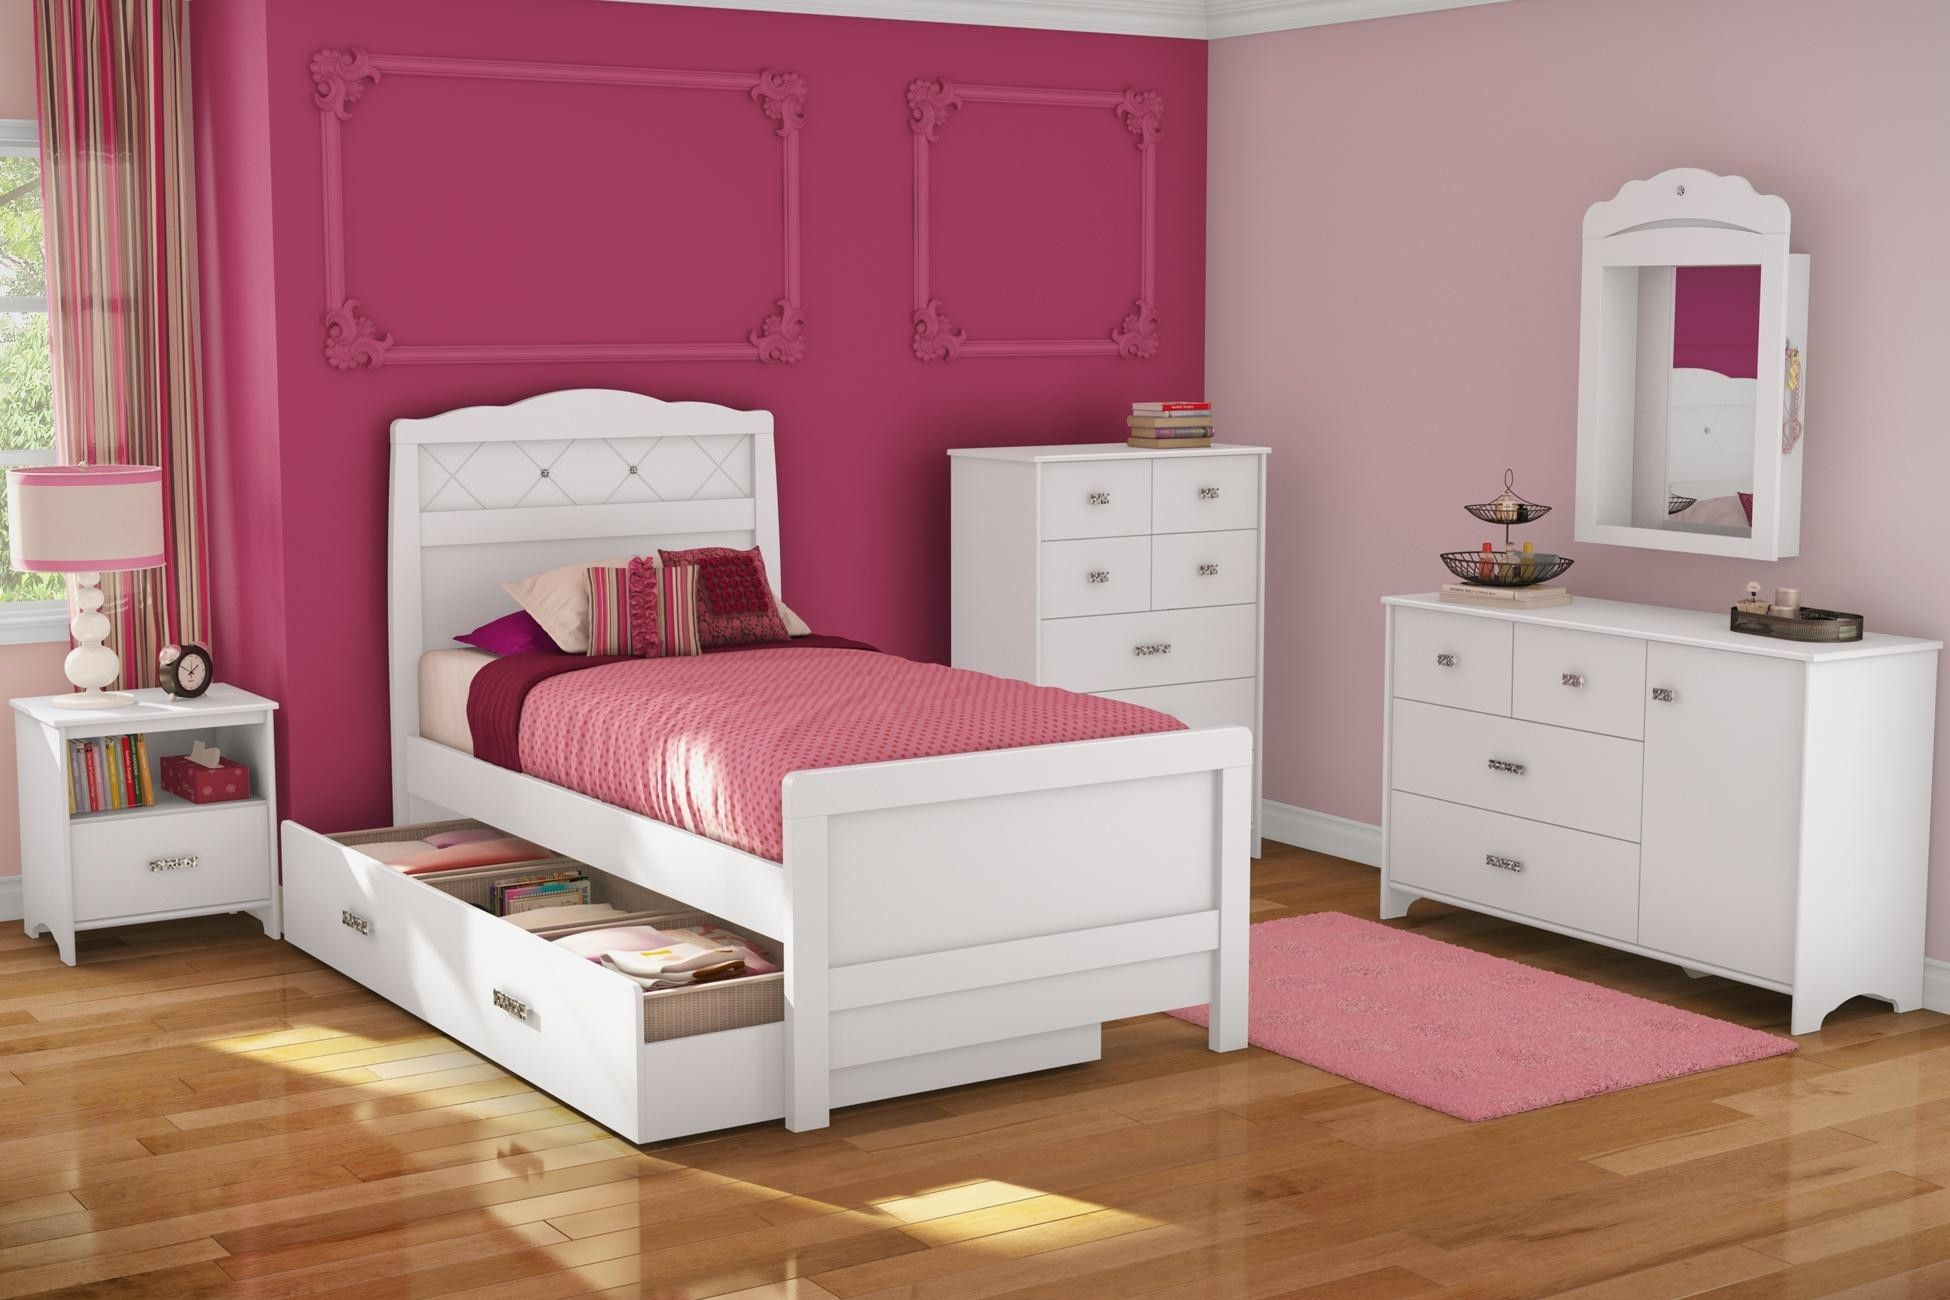 Most Popular Girls Twin Bedroom Furniture Ideas For Your Room Regarding Bedroom  Sets Fresh Girls Twin